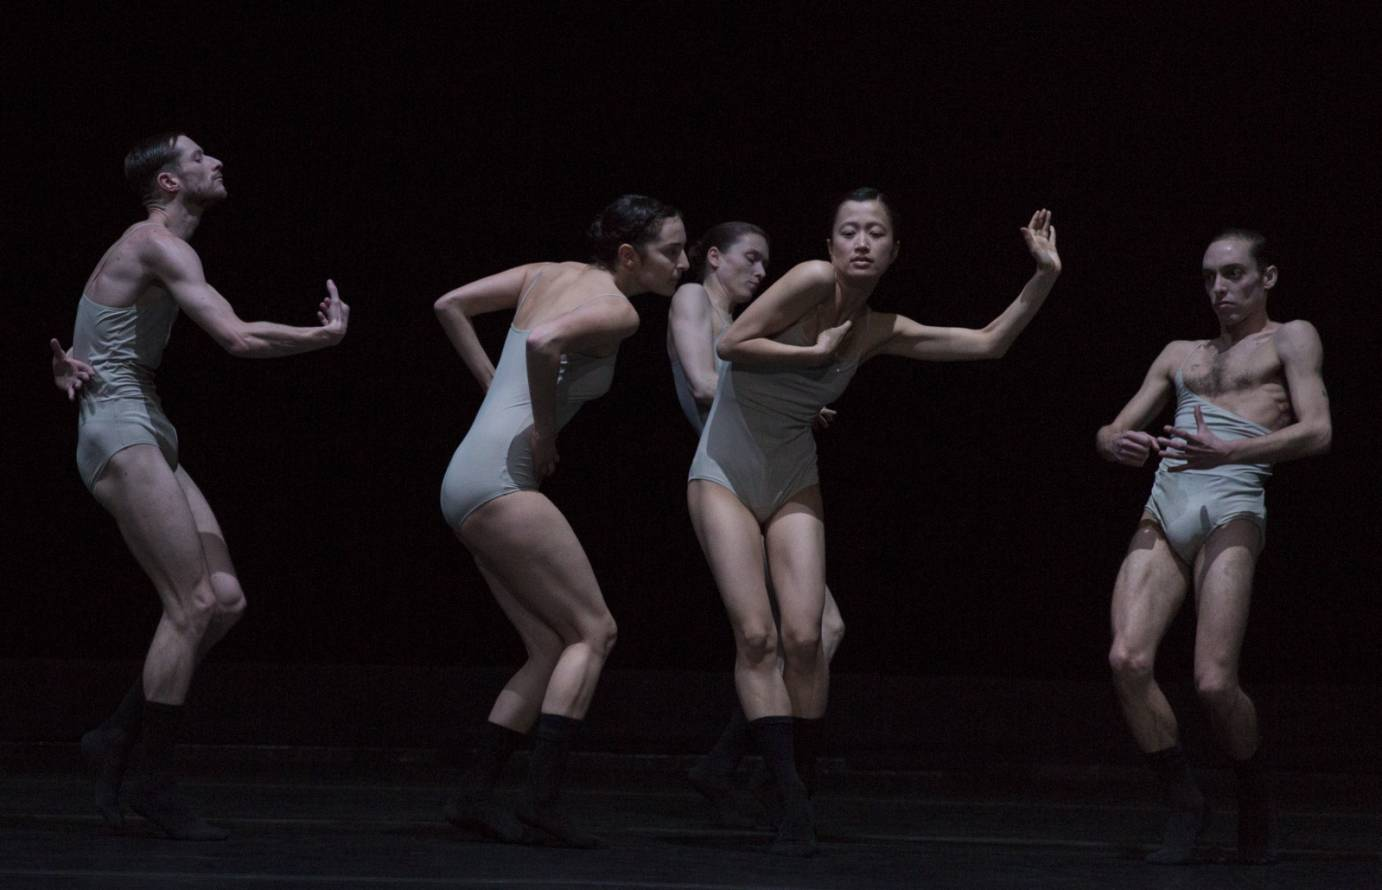 One dancer is surrounded by other dancers writhing